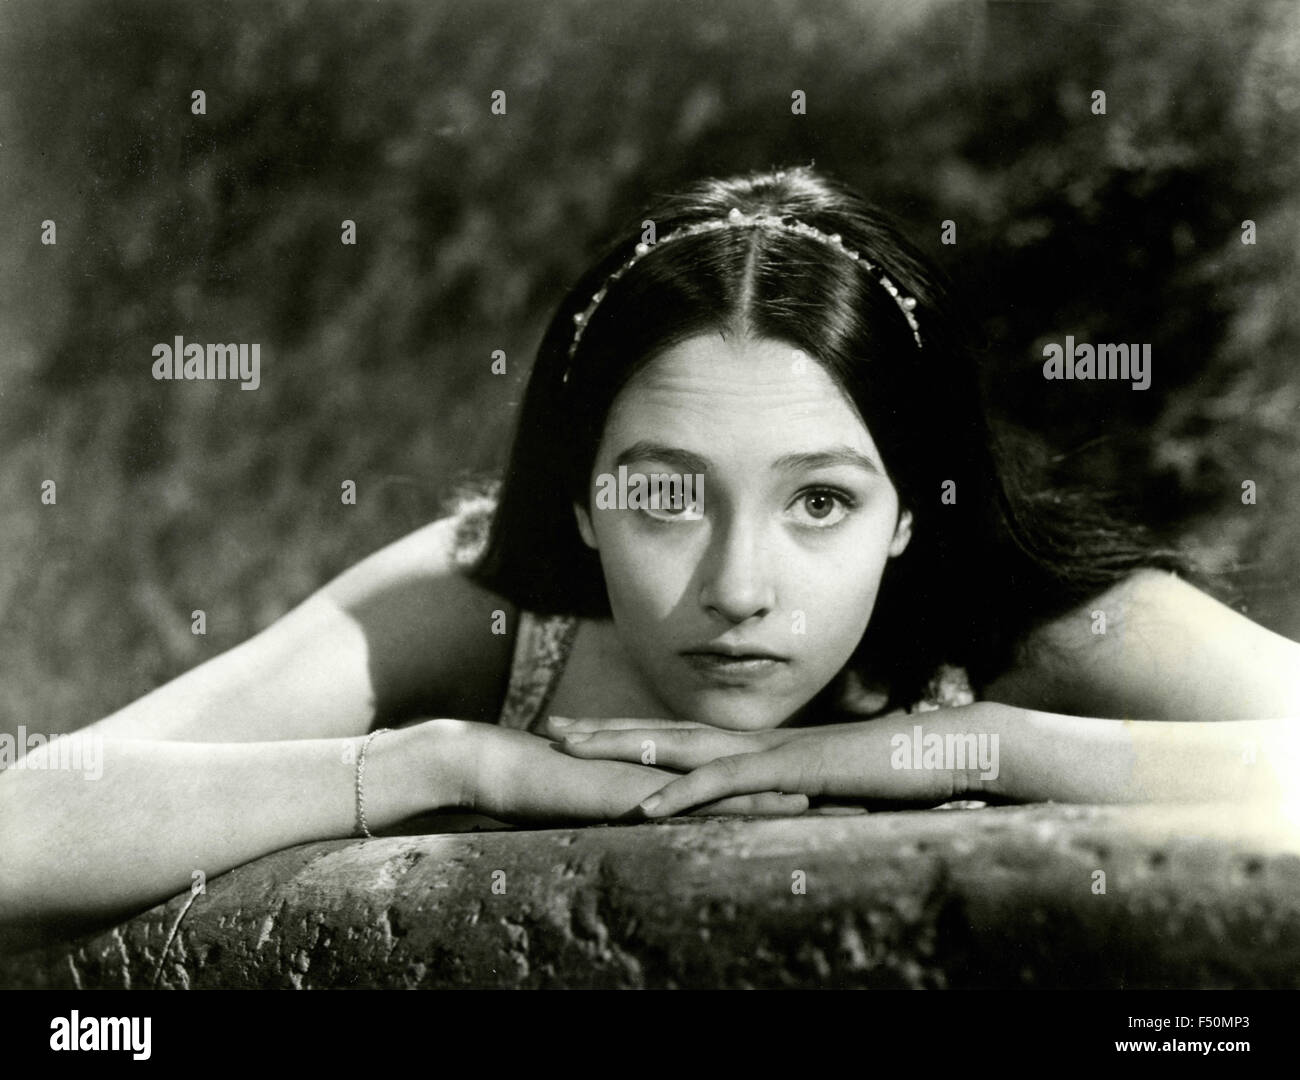 Olivia Hussey nude (44 photo), Topless, Paparazzi, Twitter, cameltoe 2015